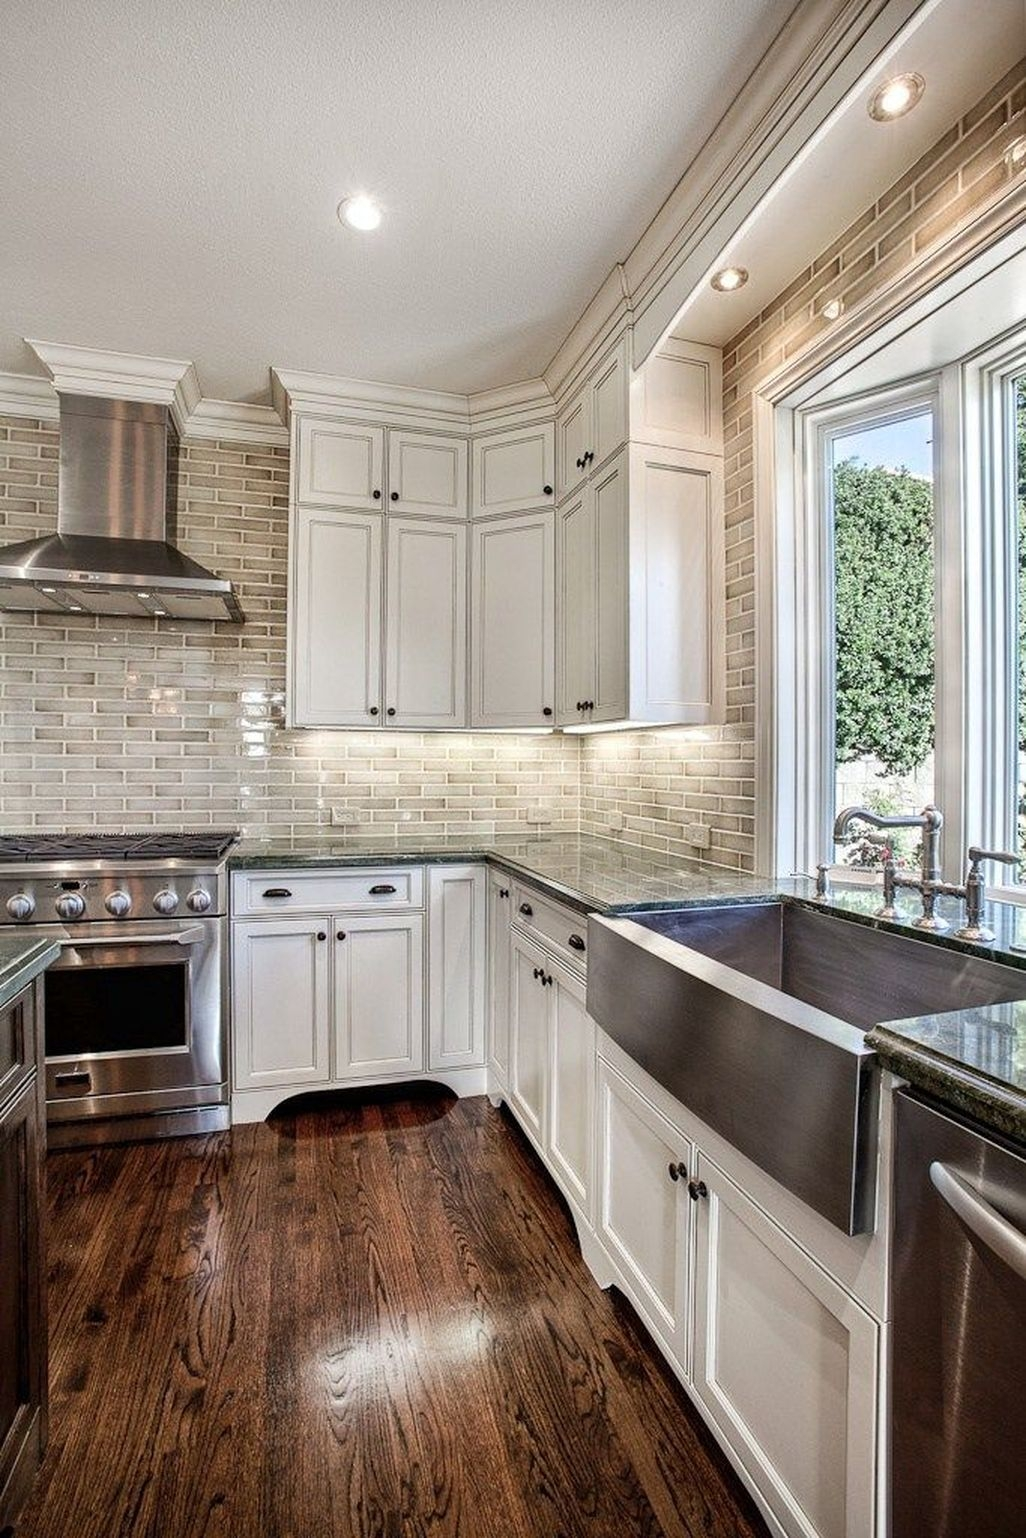 Awesome White Kitchen Backsplash Design Ideas 40